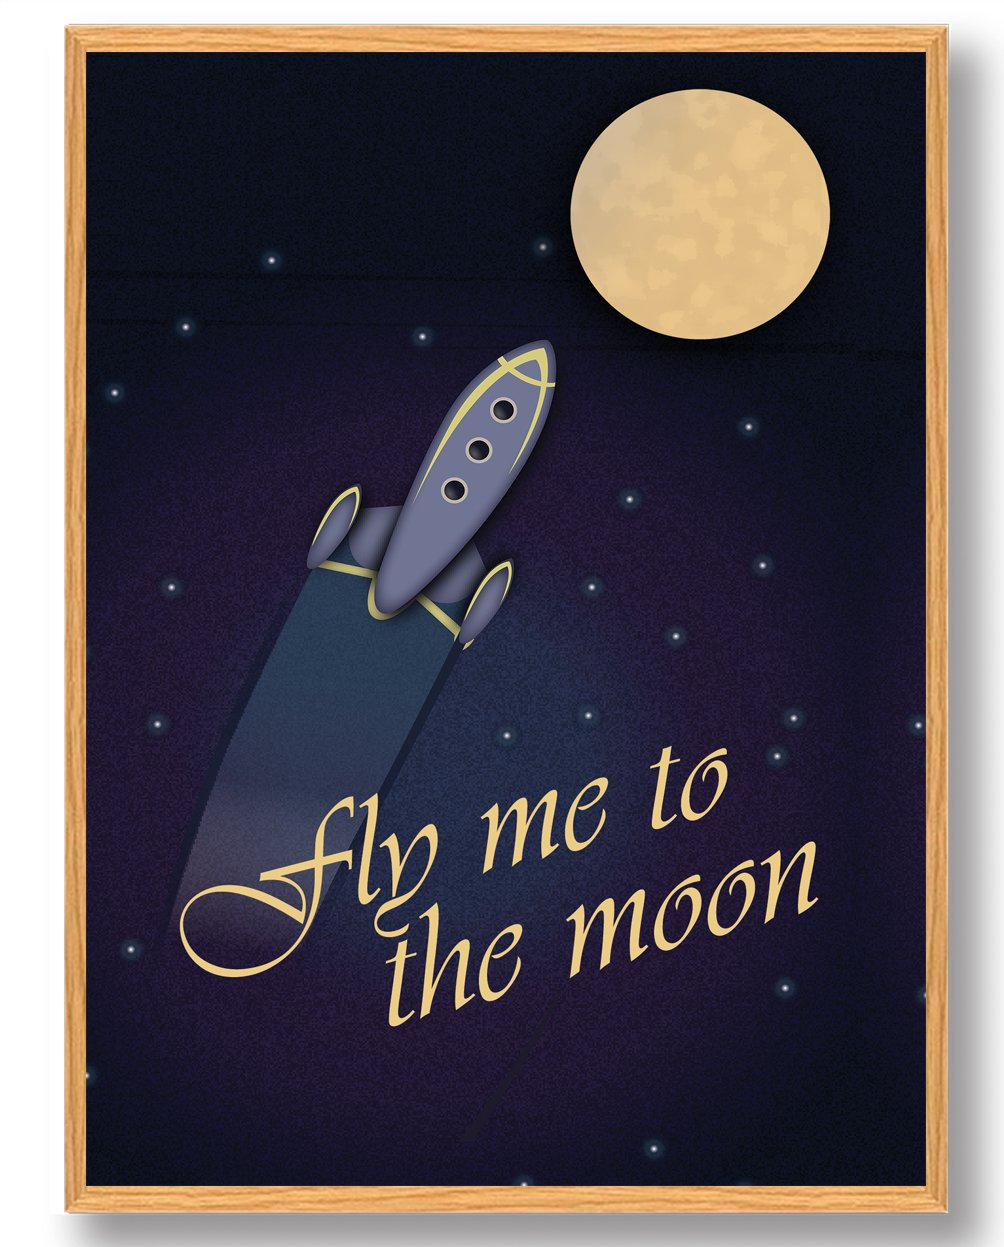 Fly me to the moon - plakat